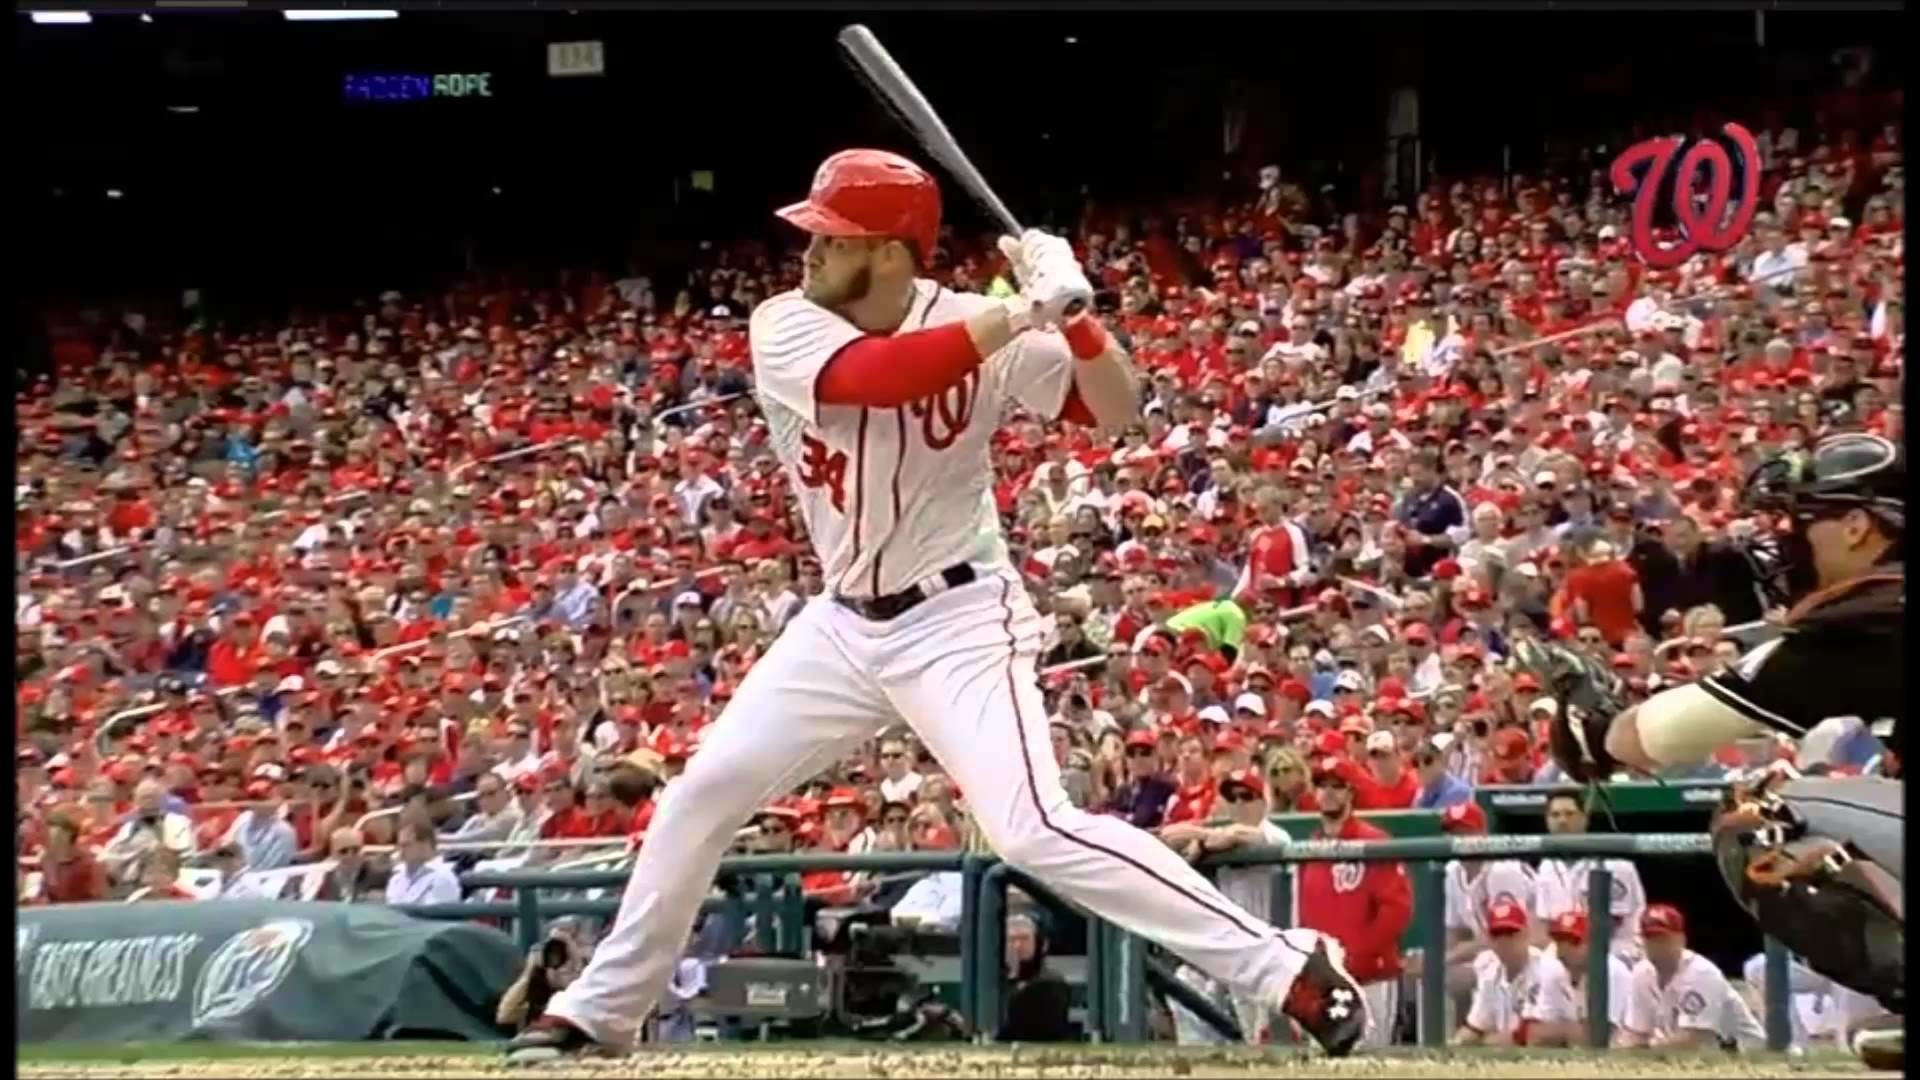 2013 Opening Day Bryce Harper 2 Homerun – YouTube